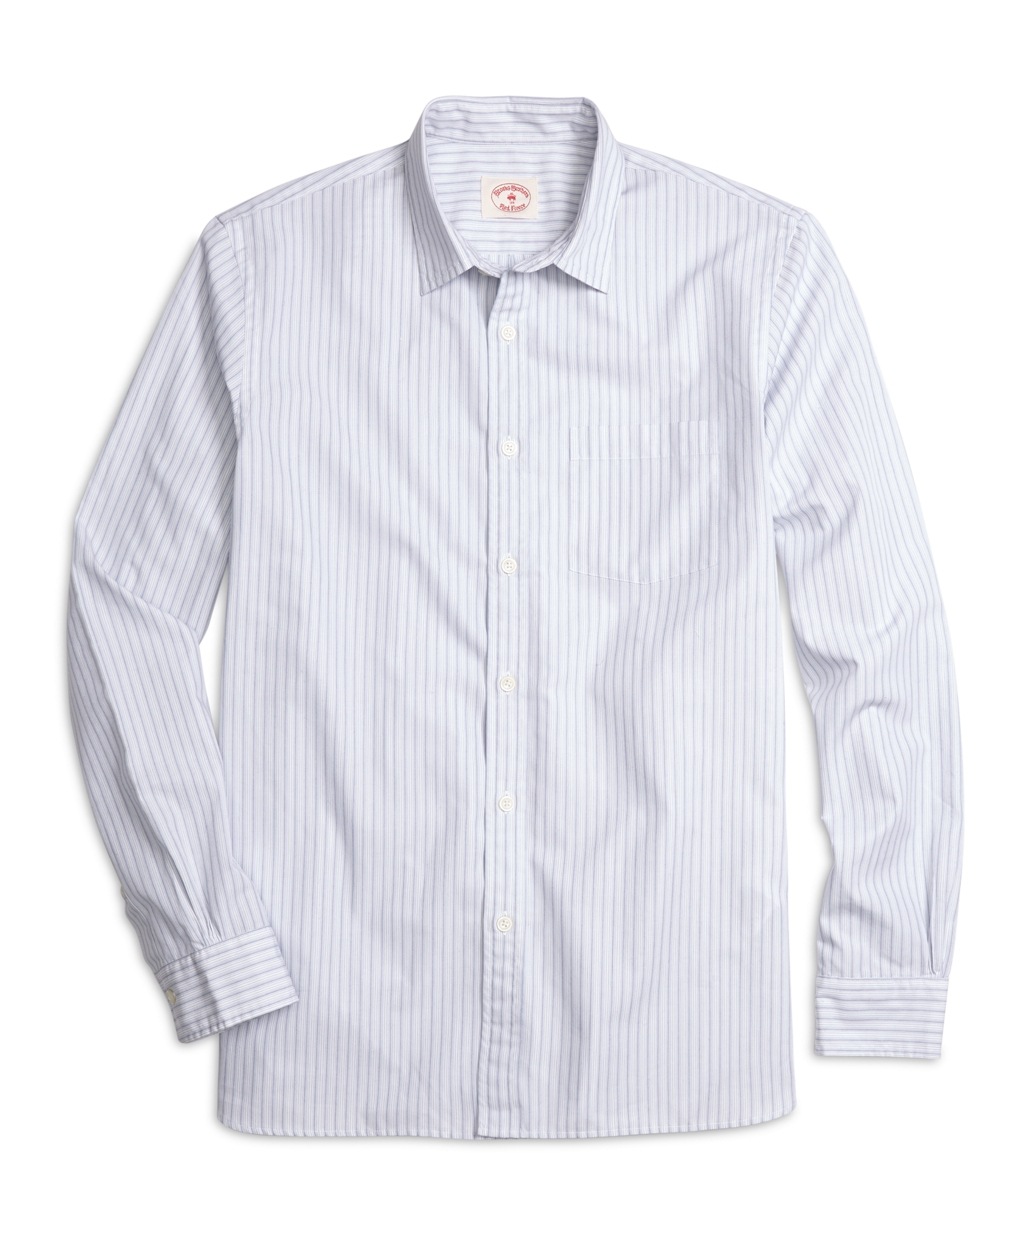 Lyst brooks brothers supima cotton banker stripe sport for Brooks brothers sports shirts